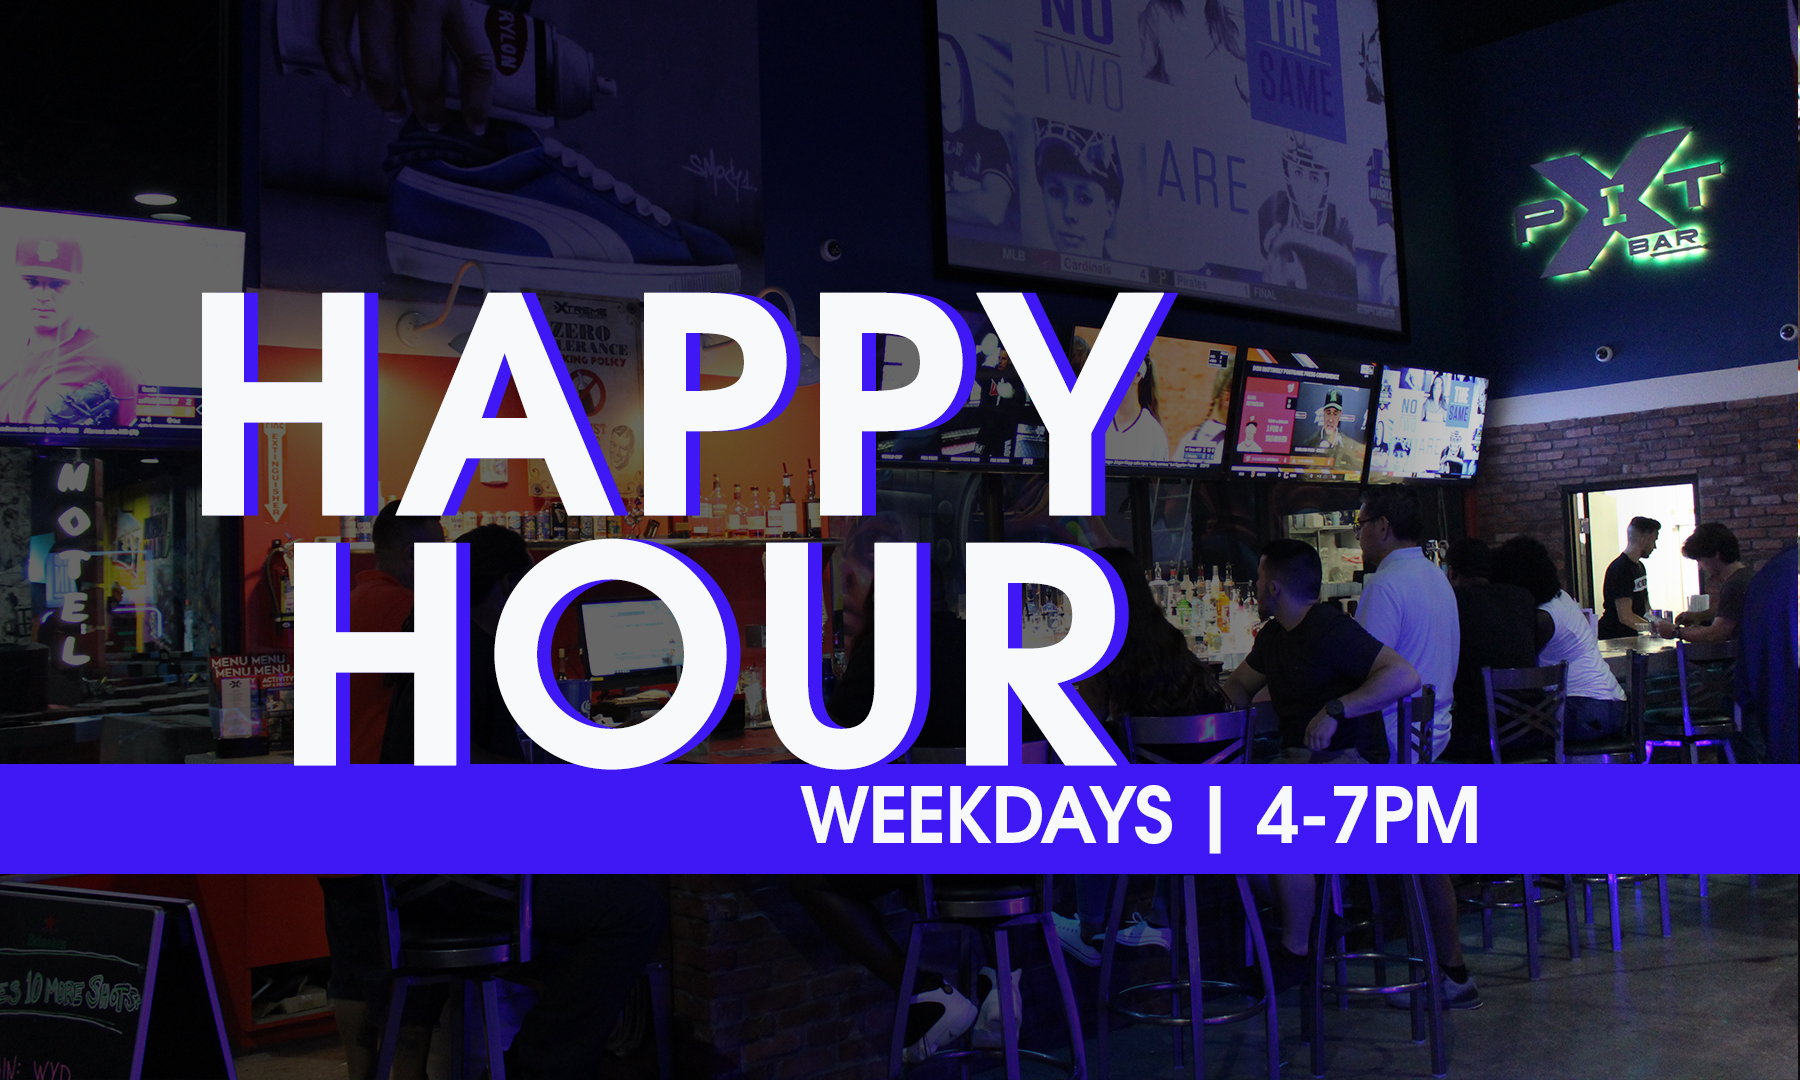 Weekday Happy Hour Special